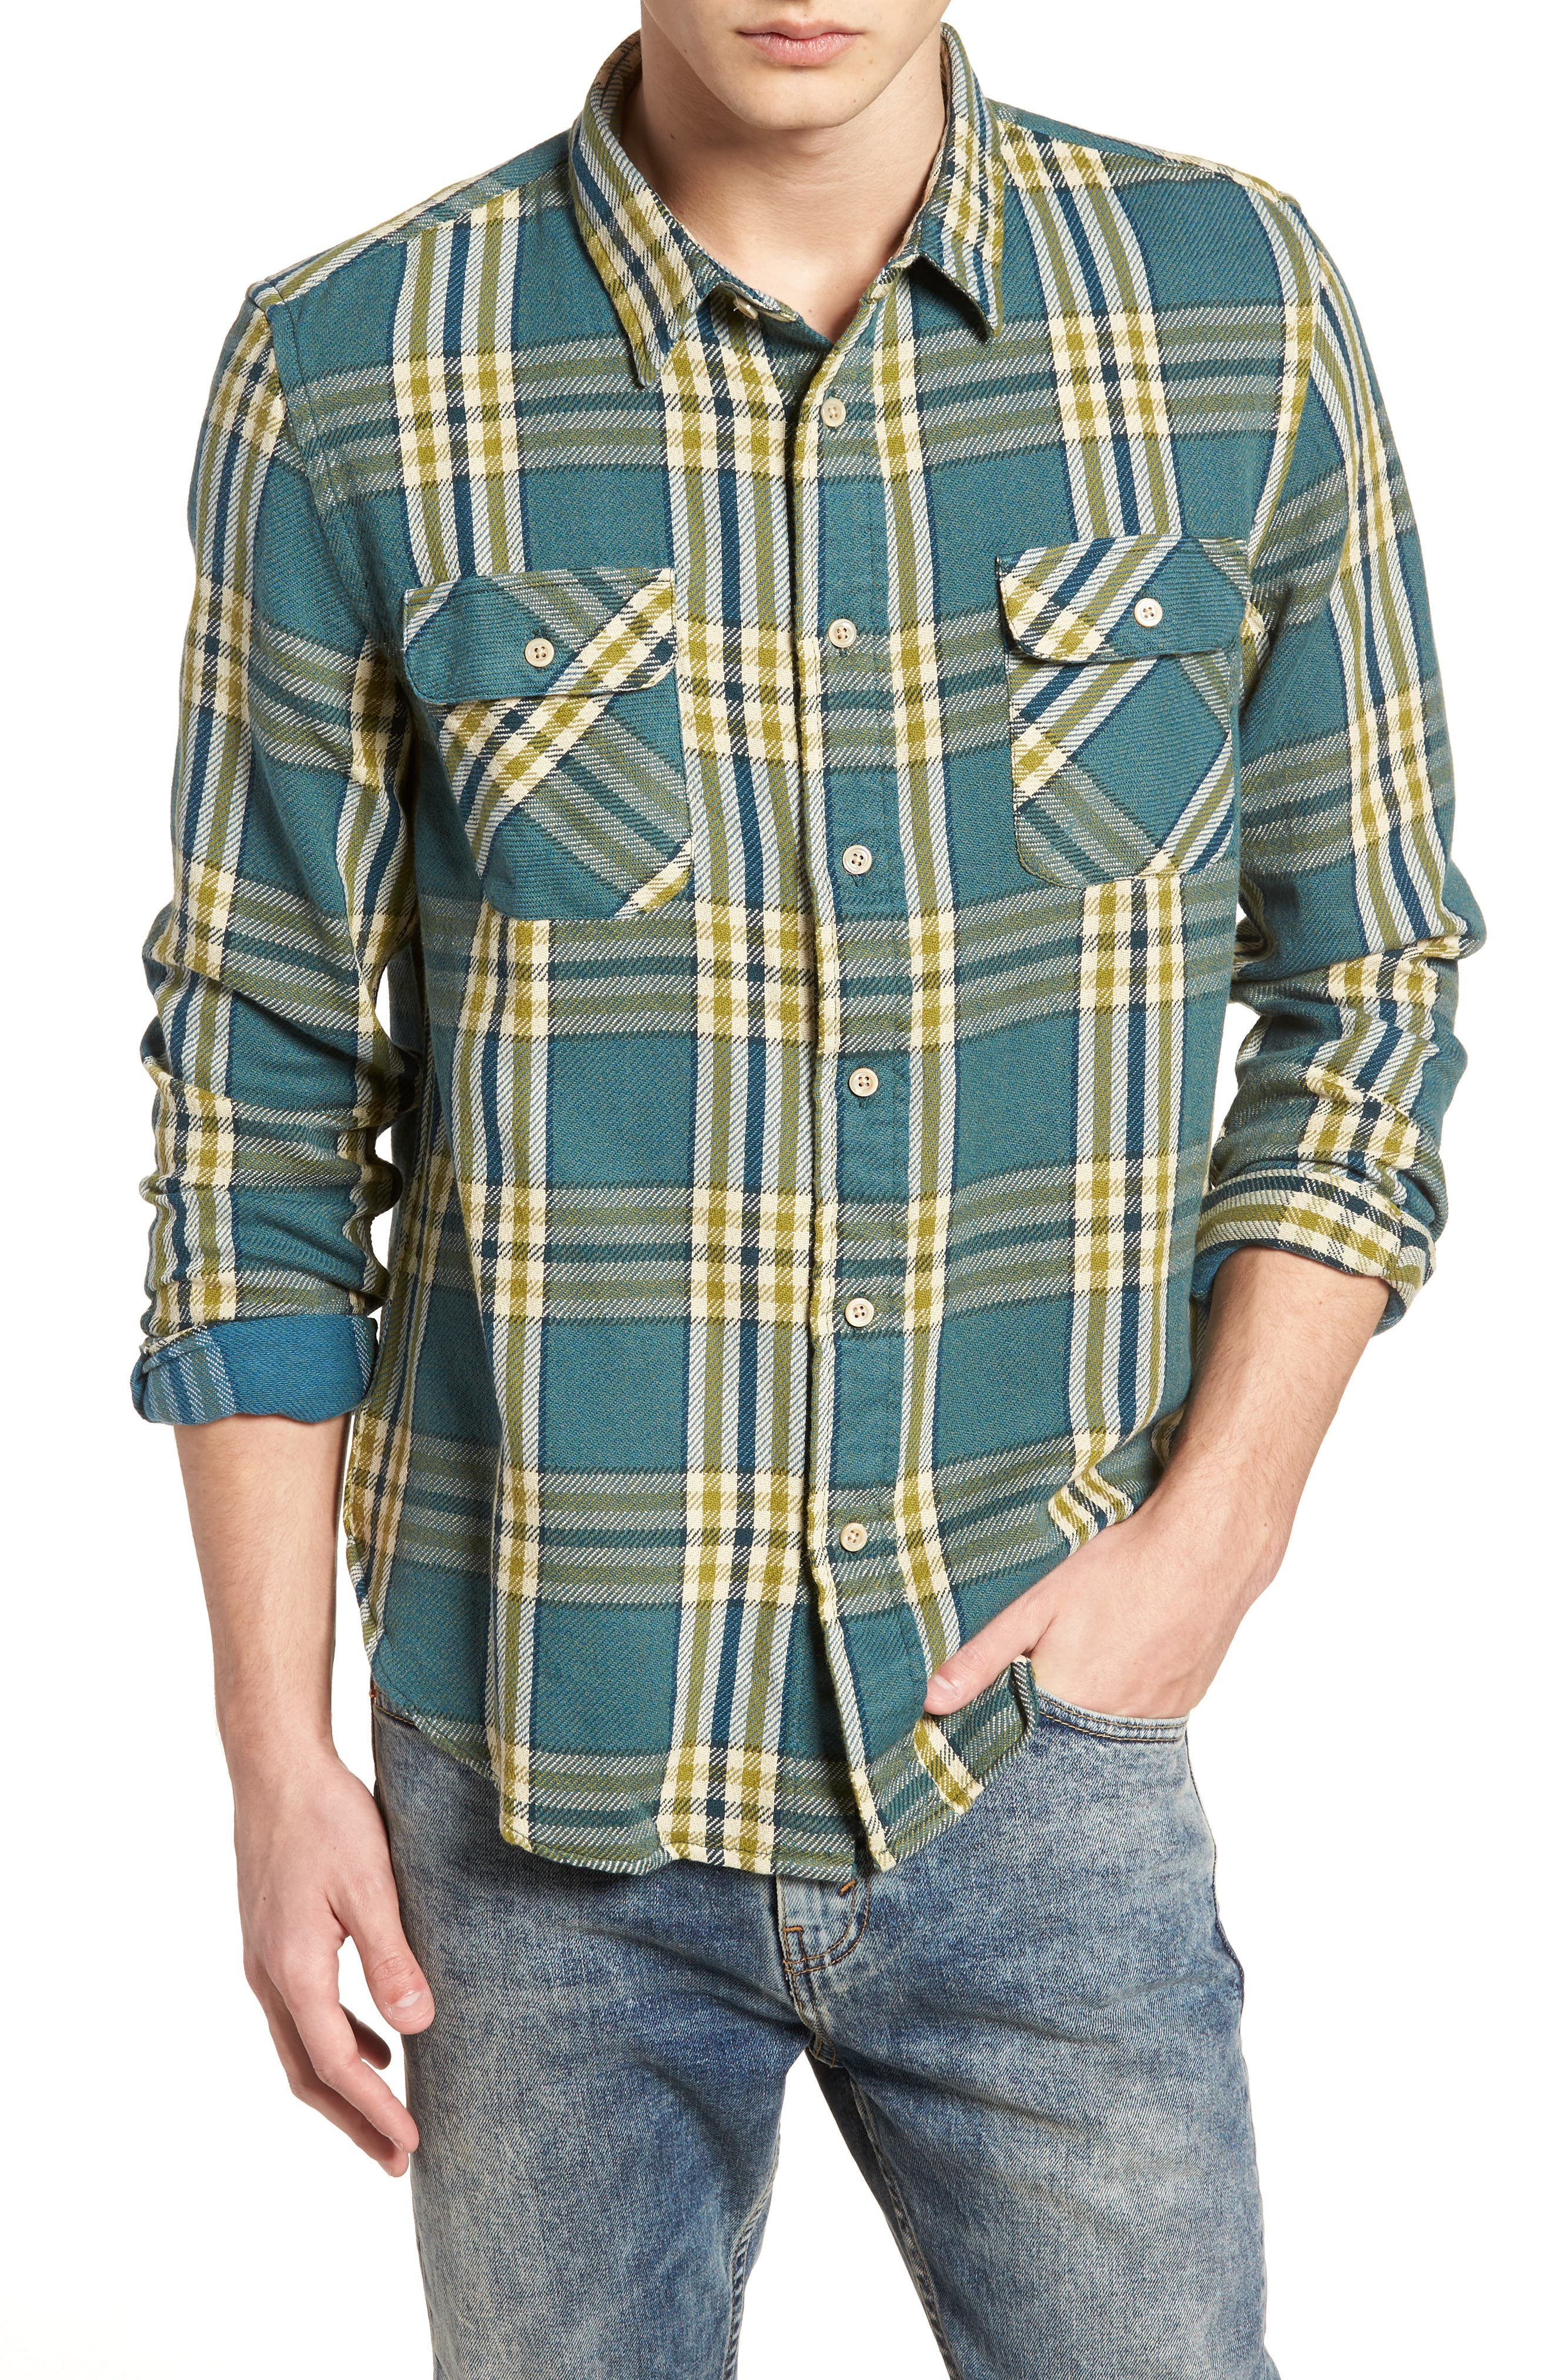 Shorthorn Western Shirt,                         Main,                         color, Under Water Blue Multi